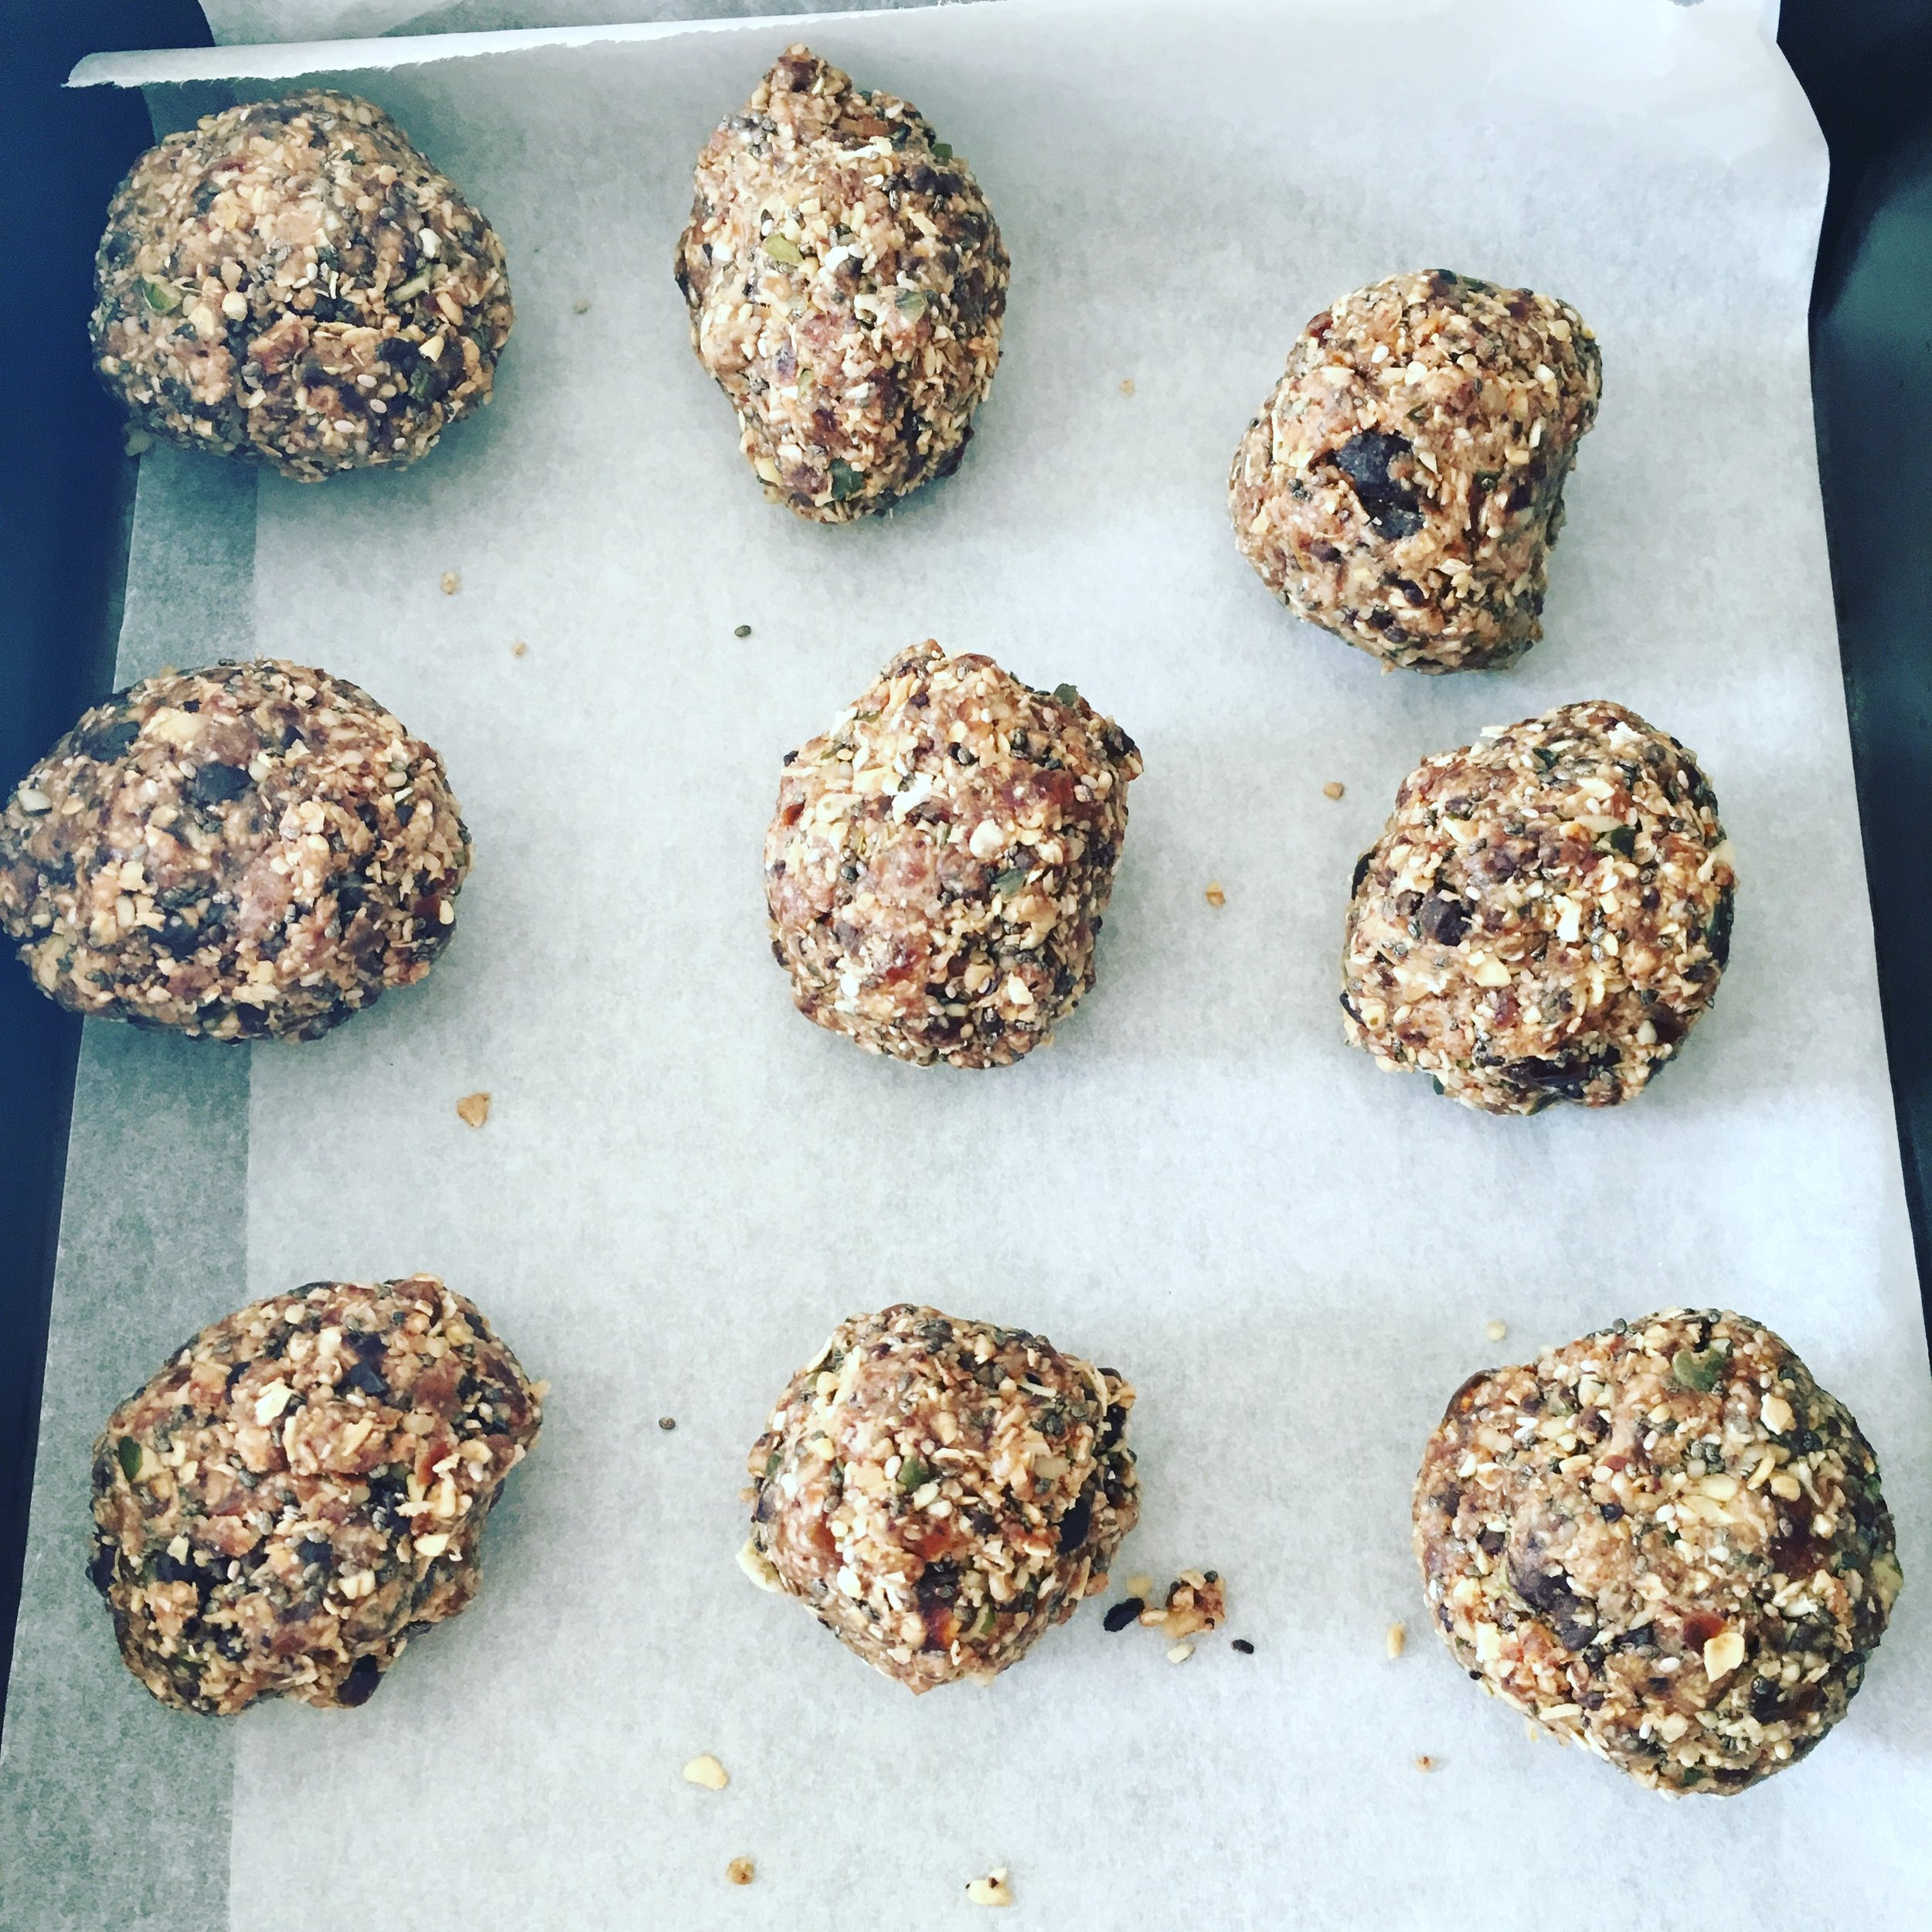 Nut, oat and fruit balls - healthy snacking for kids and adults